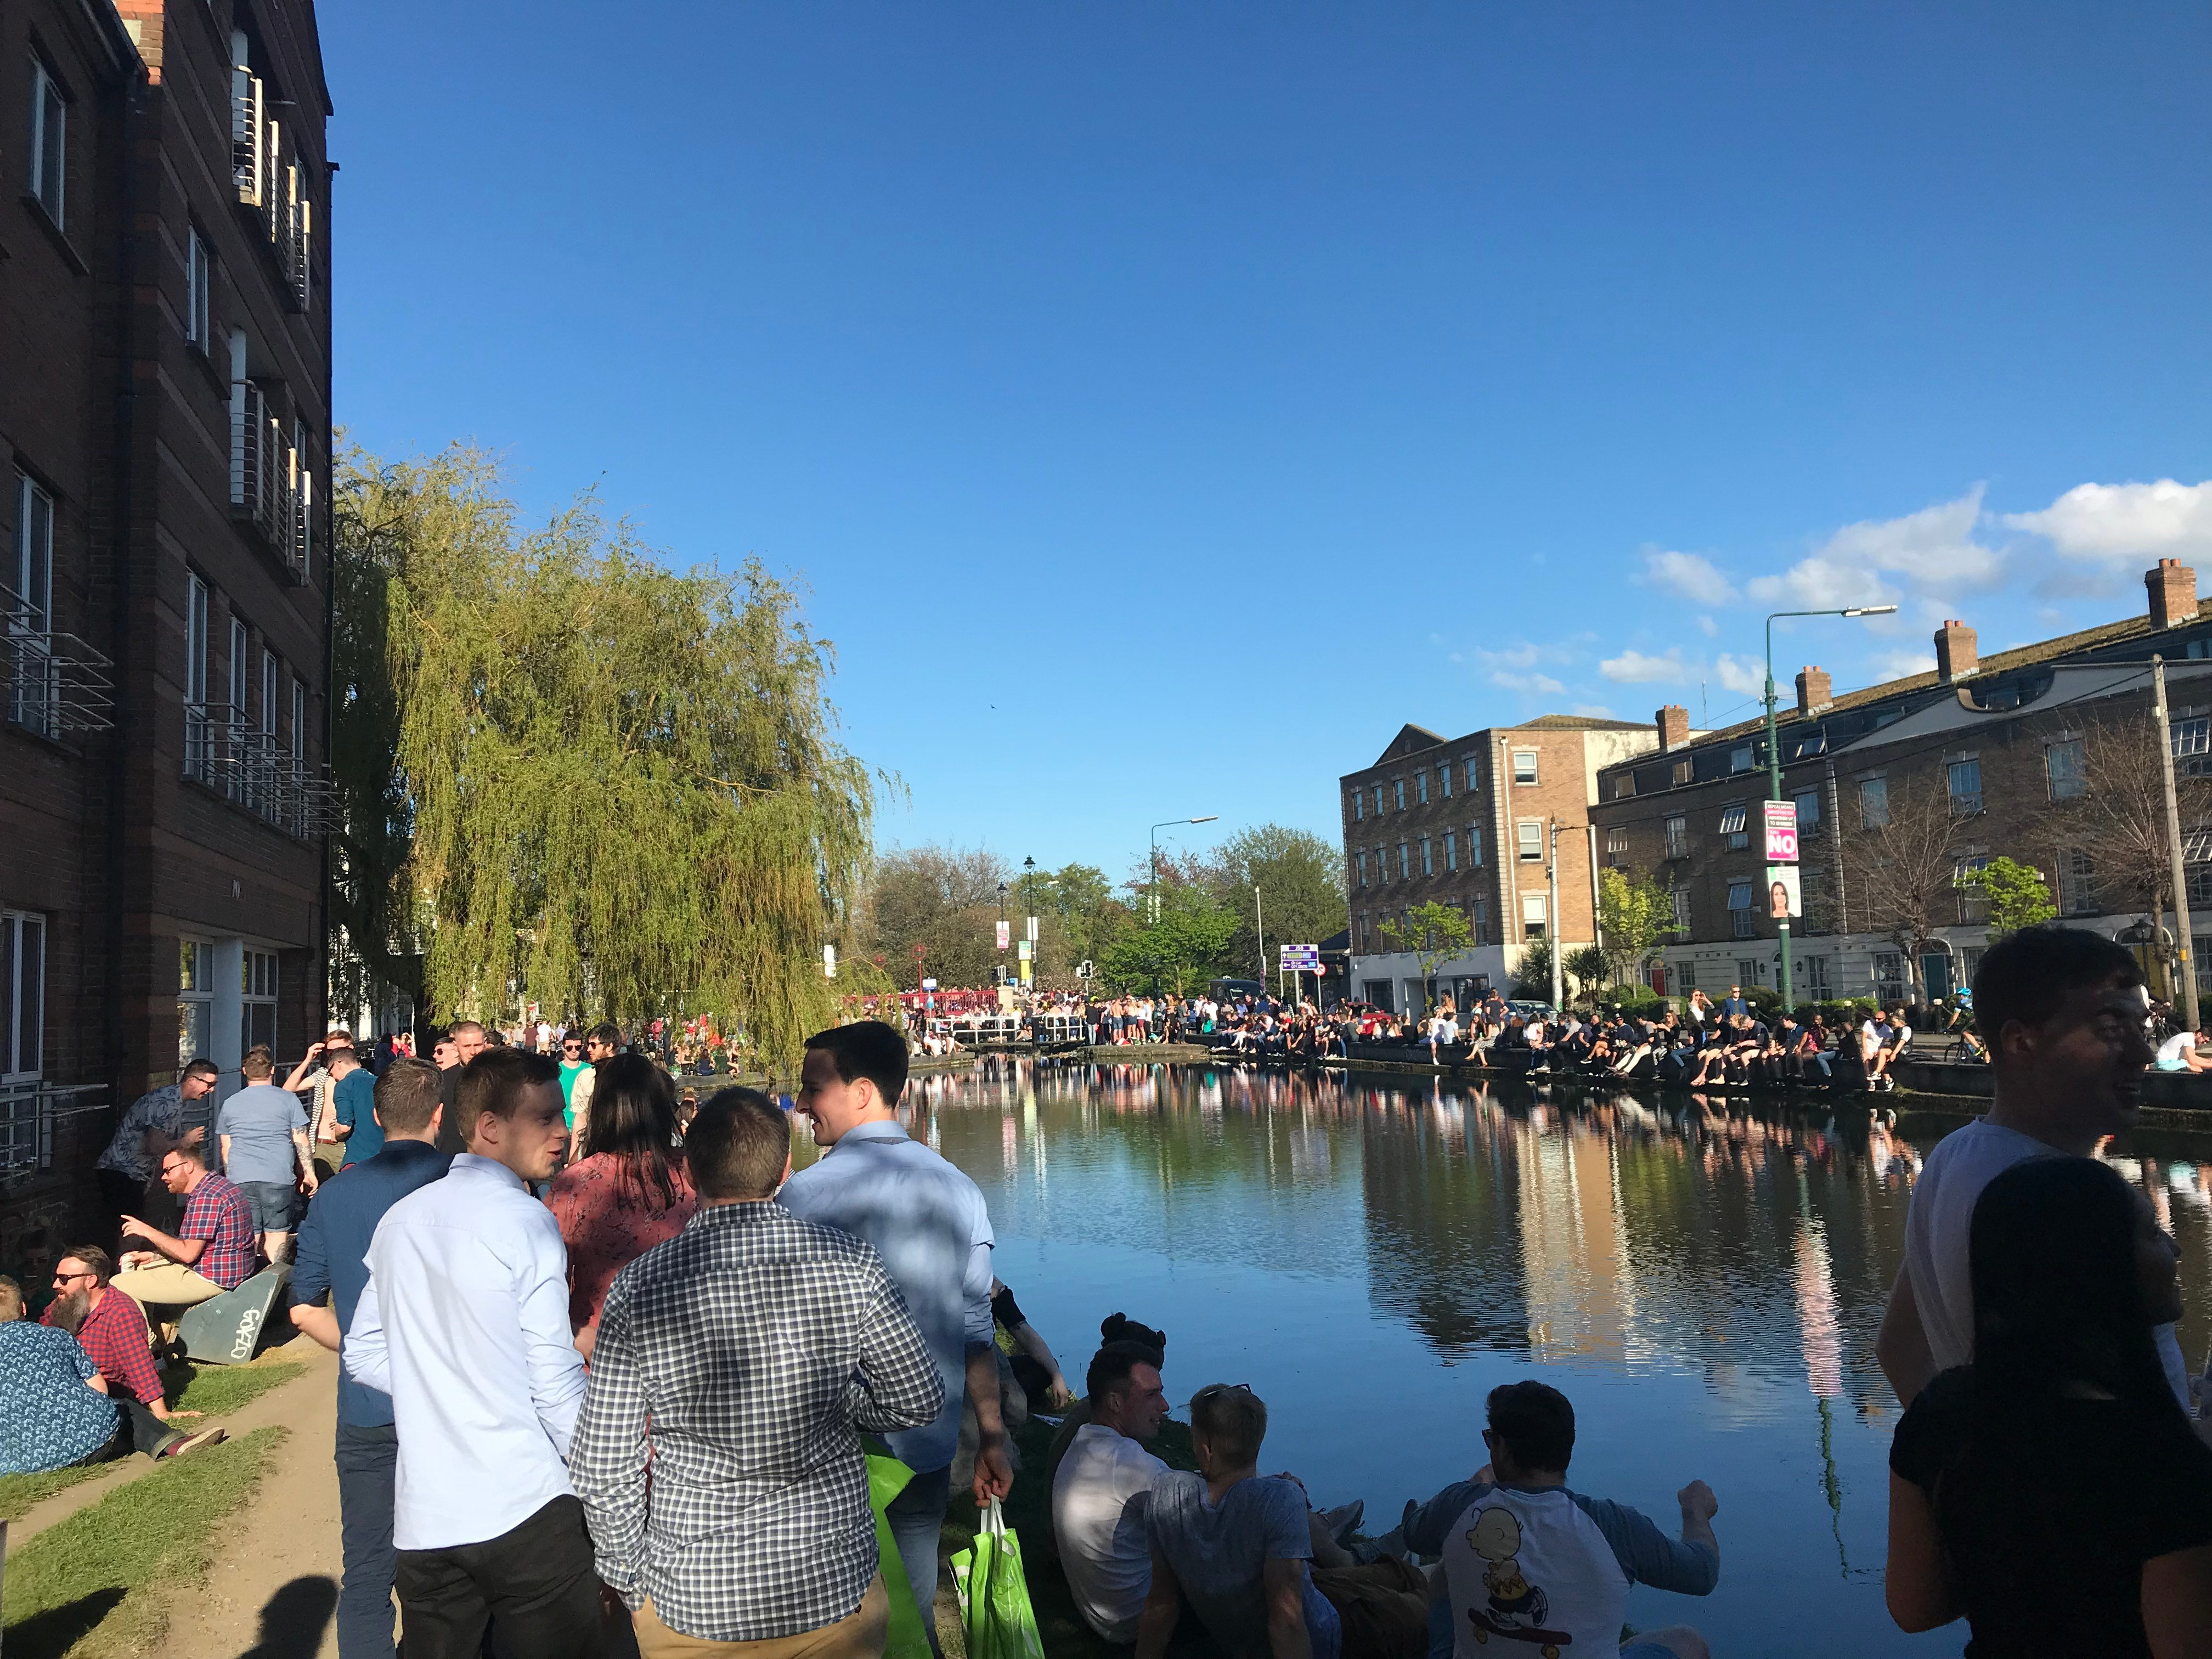 CAPAStudyAbroad_Dublin_Spring2018_From Brandon Mooney - The Canal on a Sunny Day